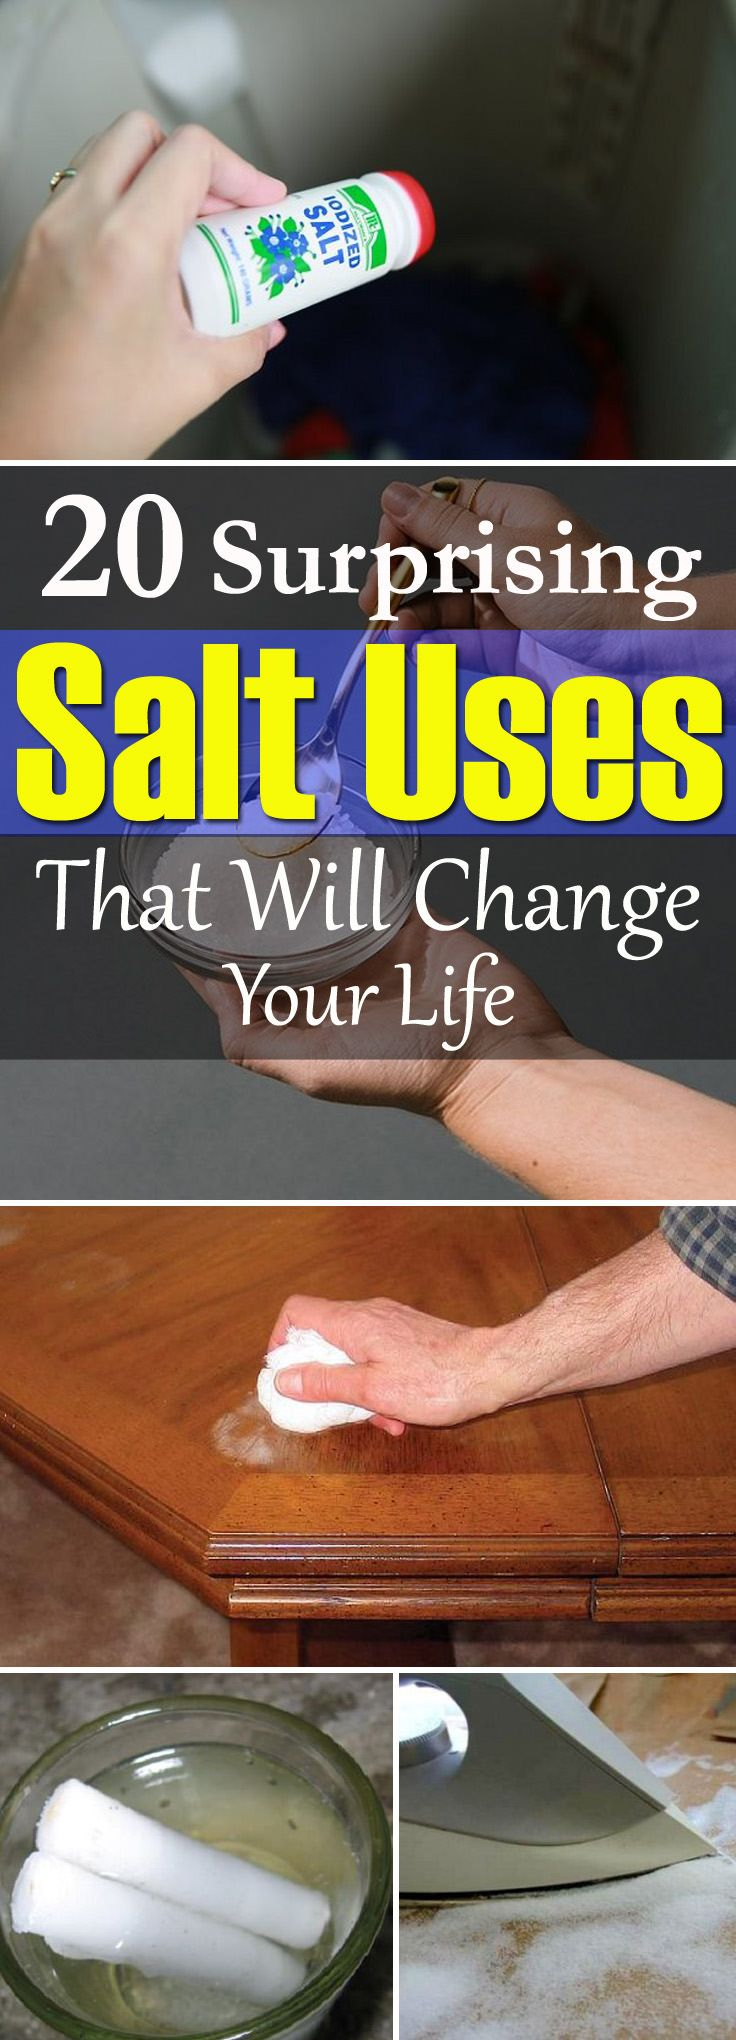 '20 Unusual Ways Salt Can Be Useful In Your Home You Never Knew...!' (via Great Things First)